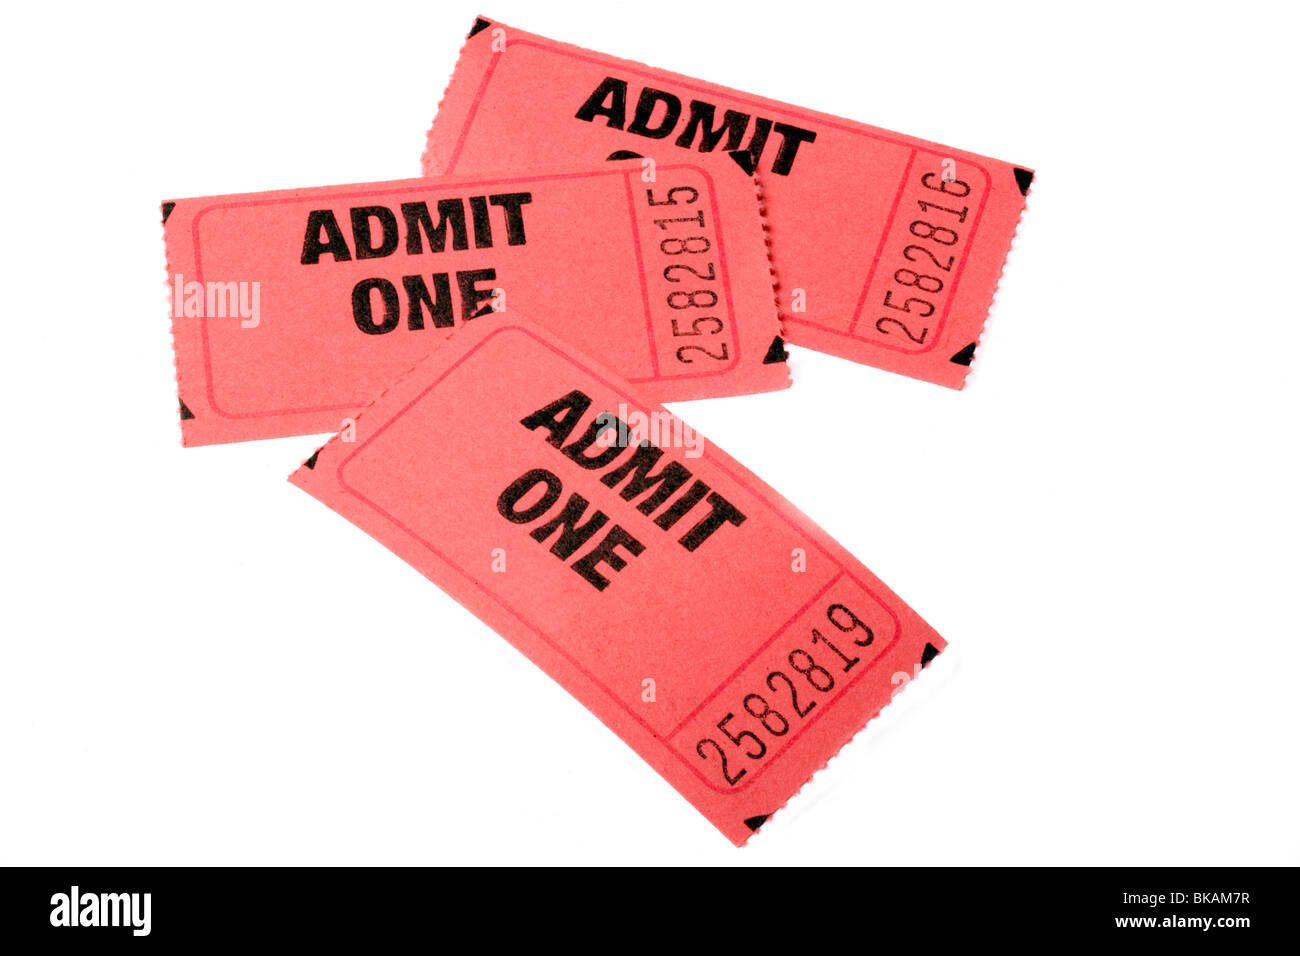 Three Admission tickets - Stock Image